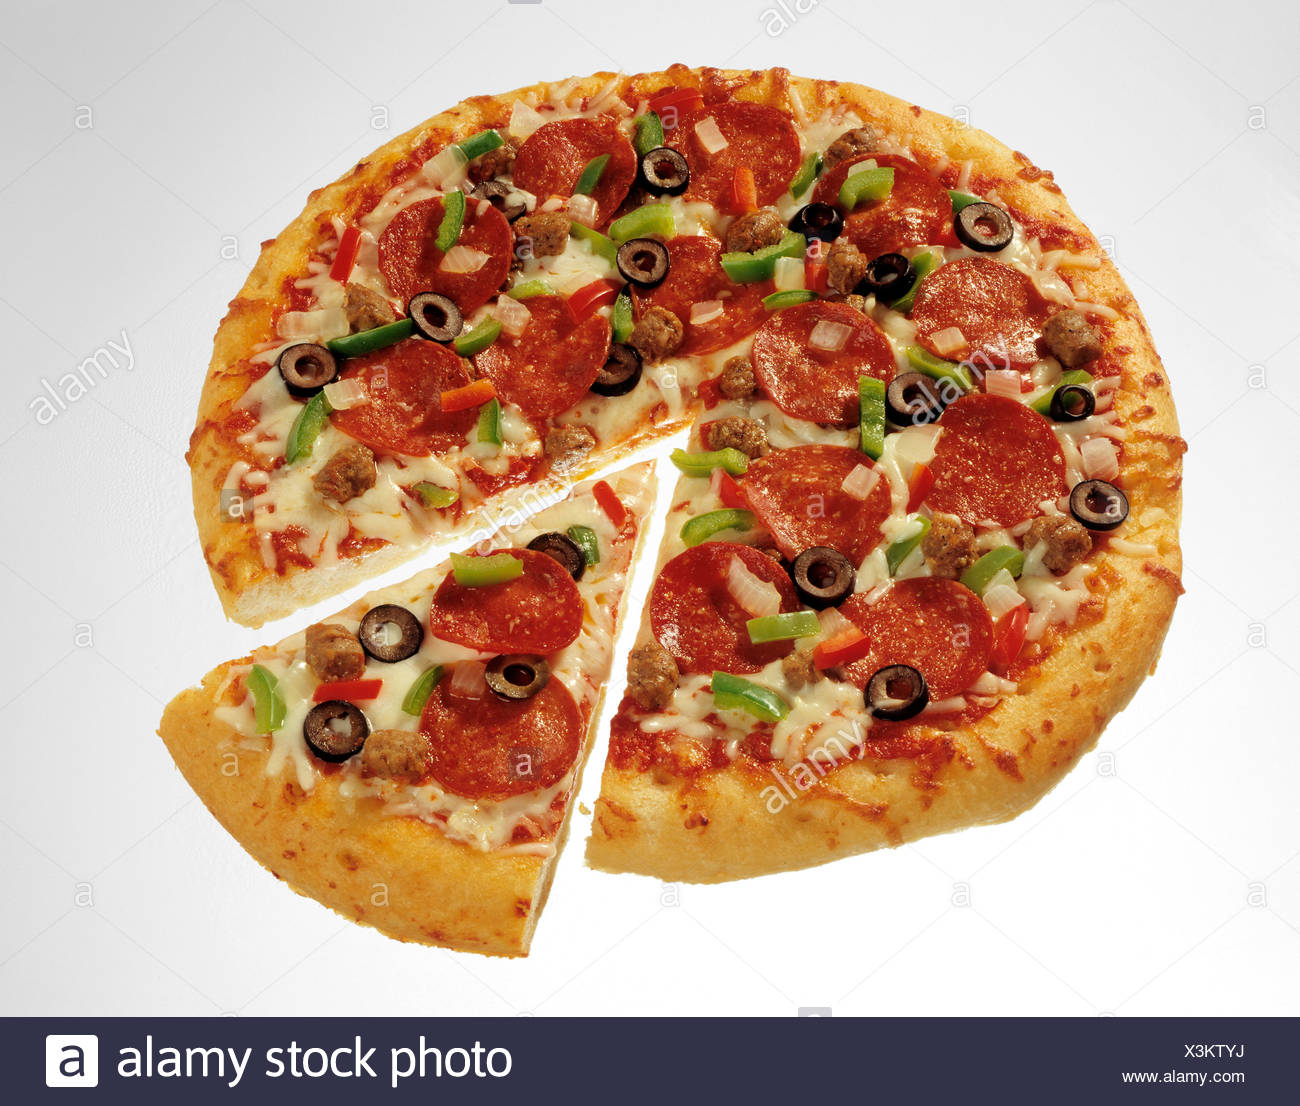 images Loaded Pizza